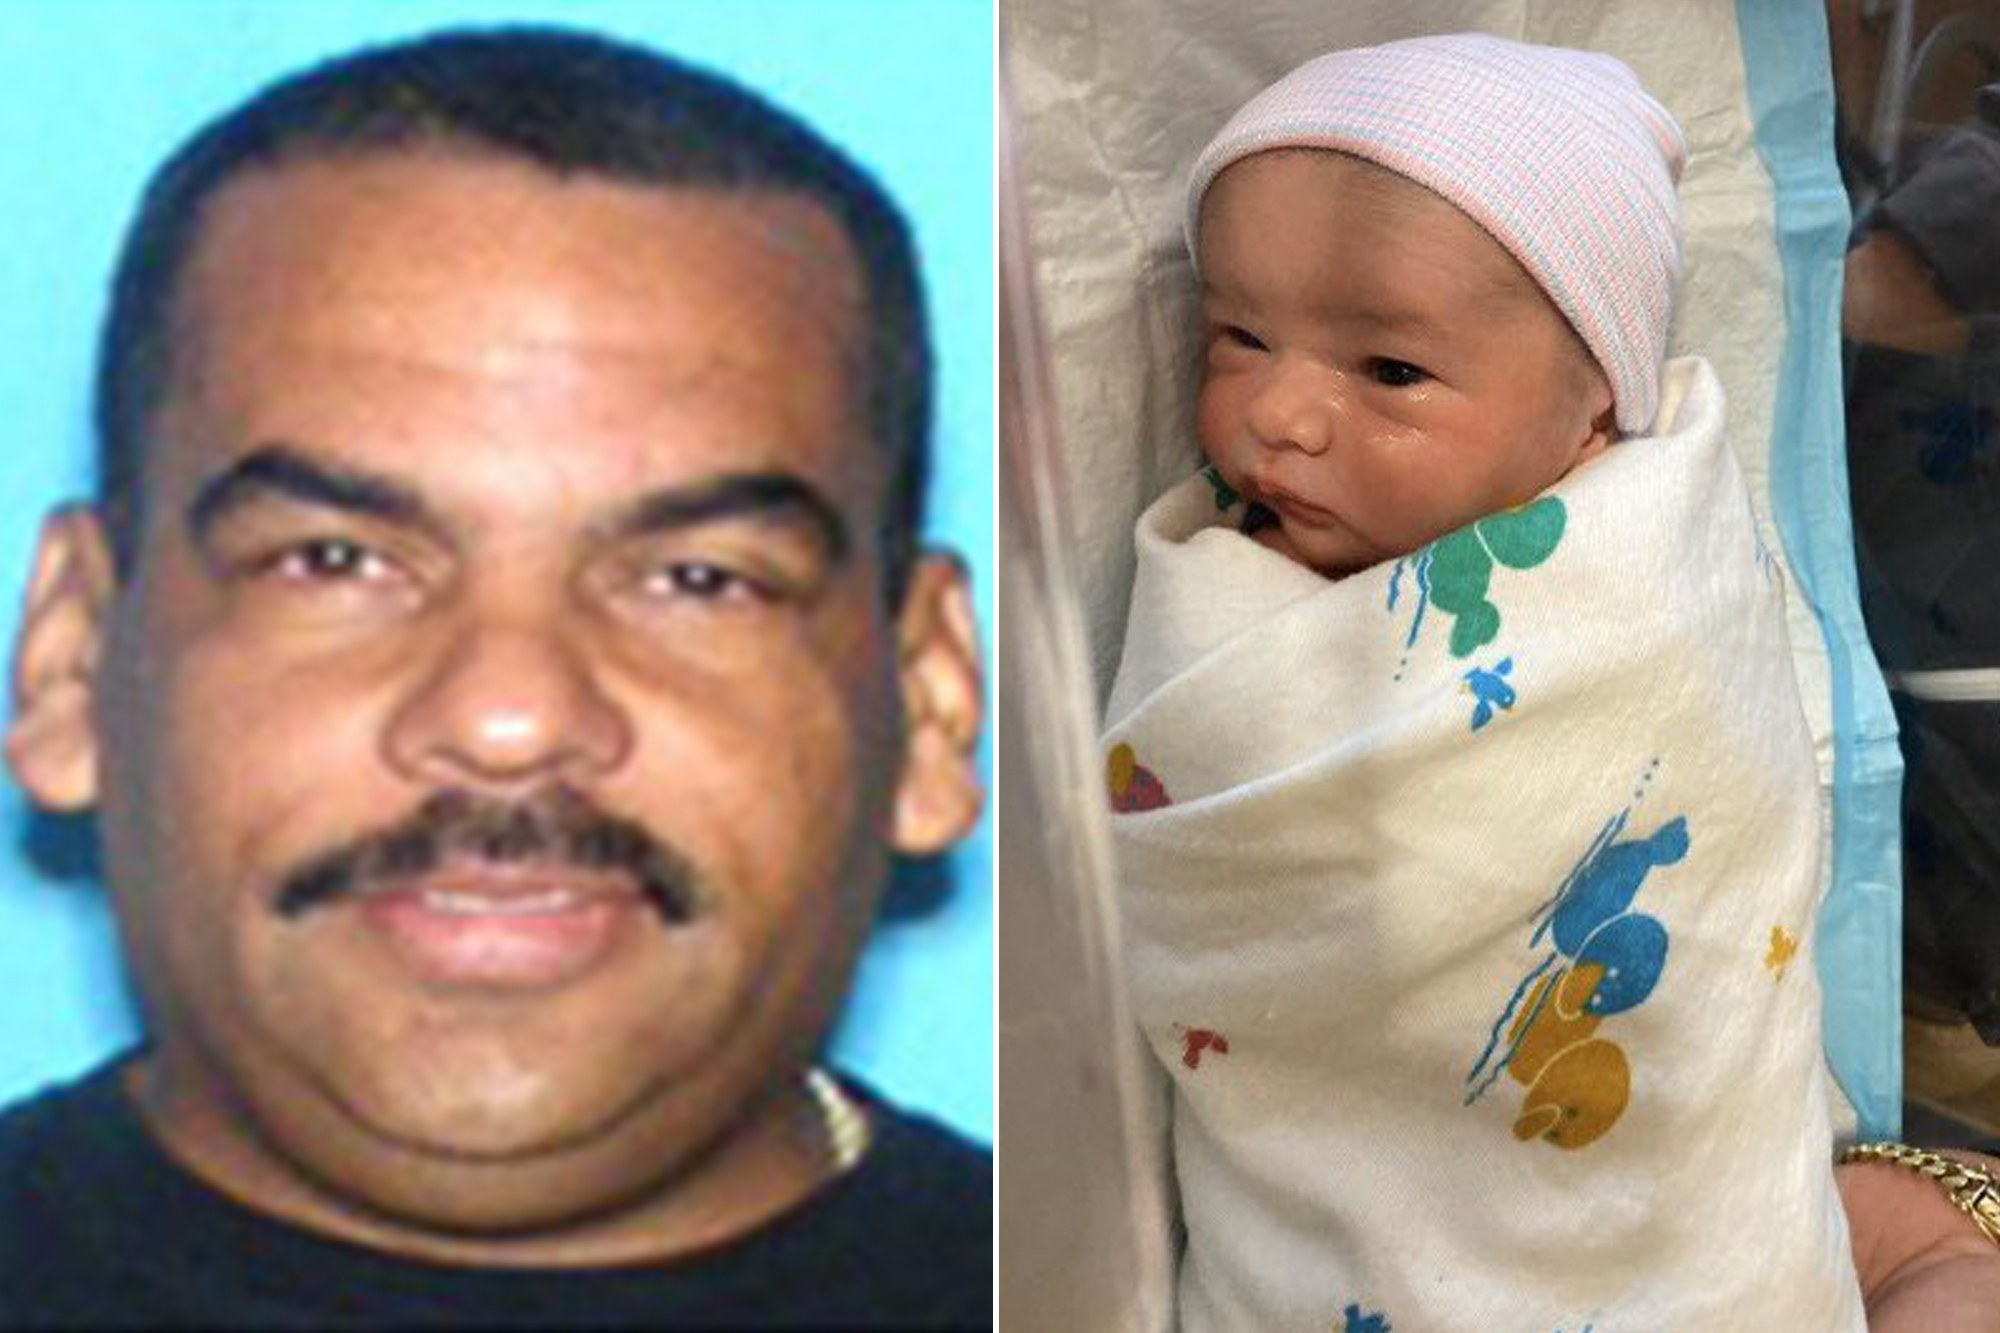 Amber Alert Issued For Infant After 3 Women Found Dead In Florida